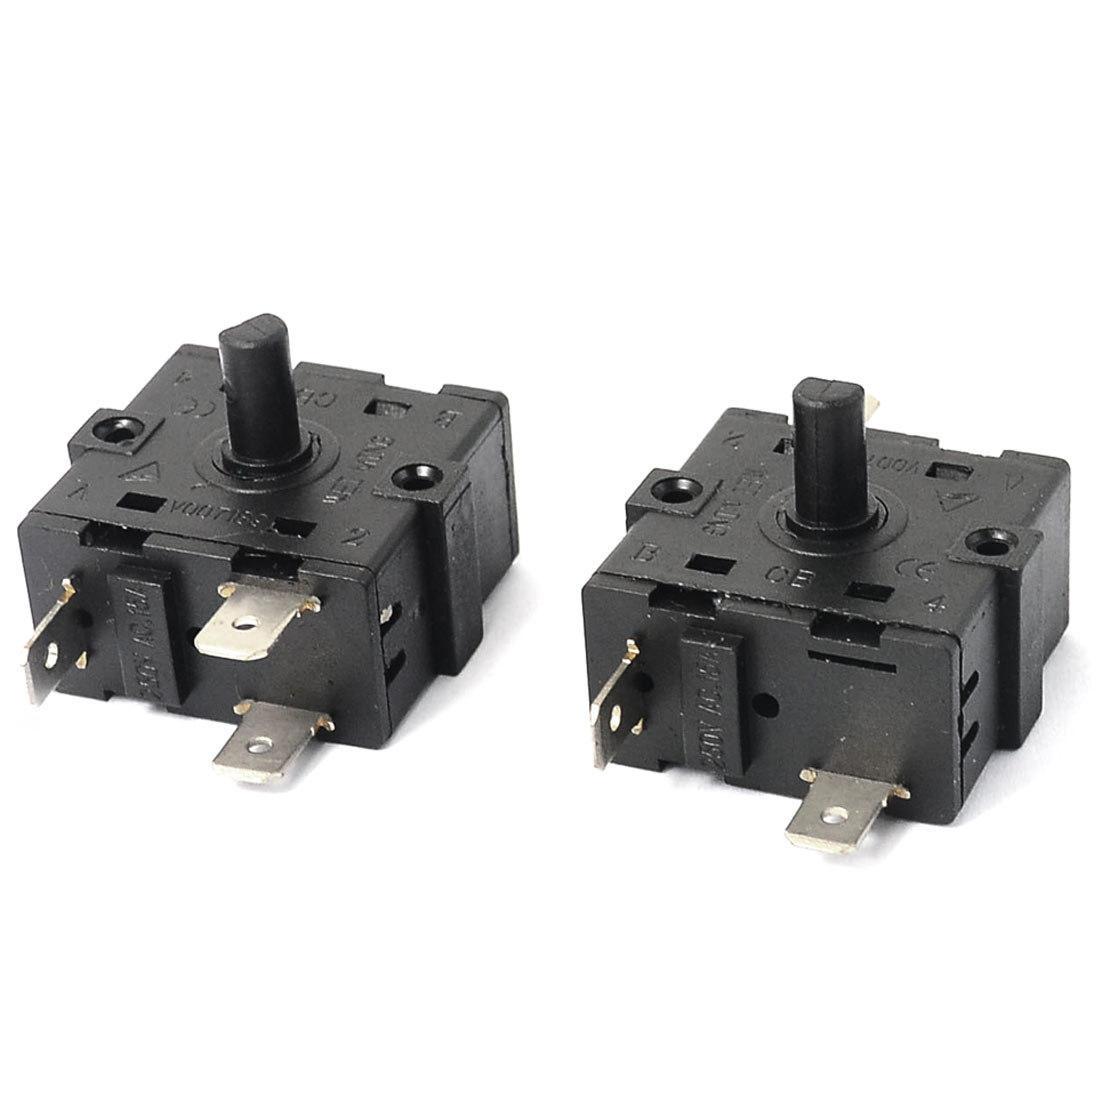 AC 250V 15A 5 Pins Rotary Switch Electric Heater Selector Replacement Black 2PCS